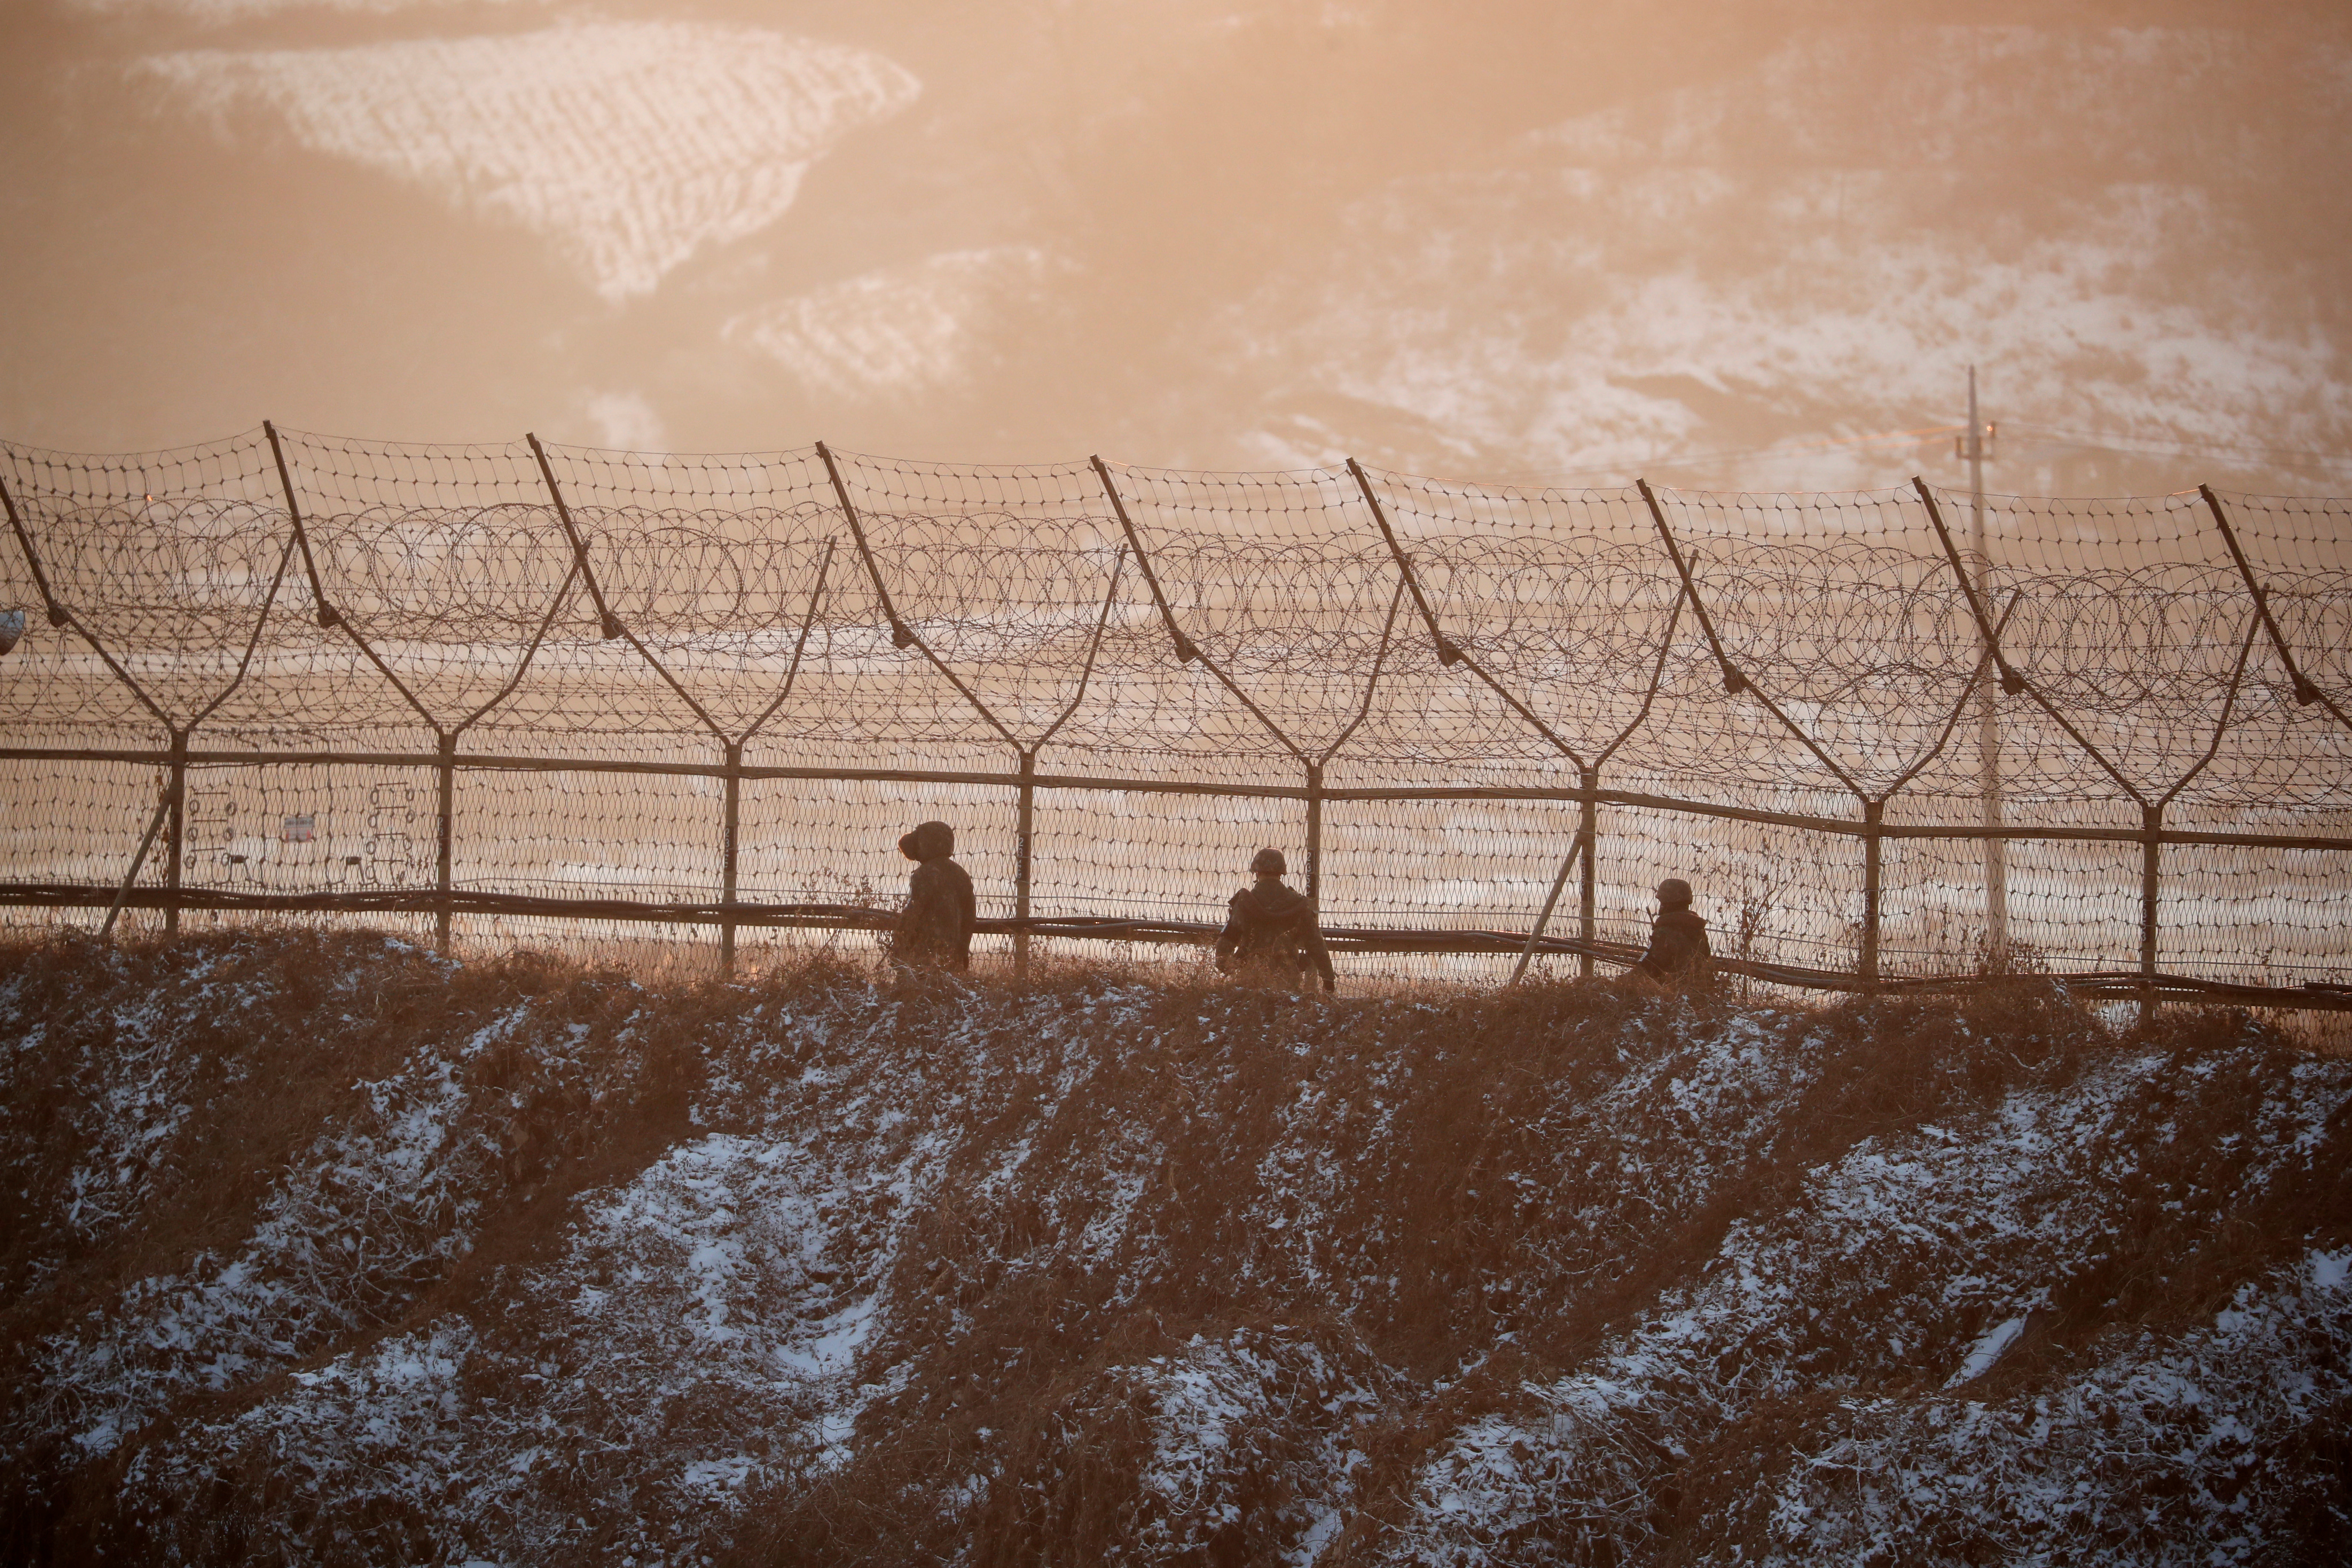 South Korean soldiers patrol along a barbed-wire fence near the demilitarized zone separating the two Koreas, in Paju, South Korea, December 21, 2017.